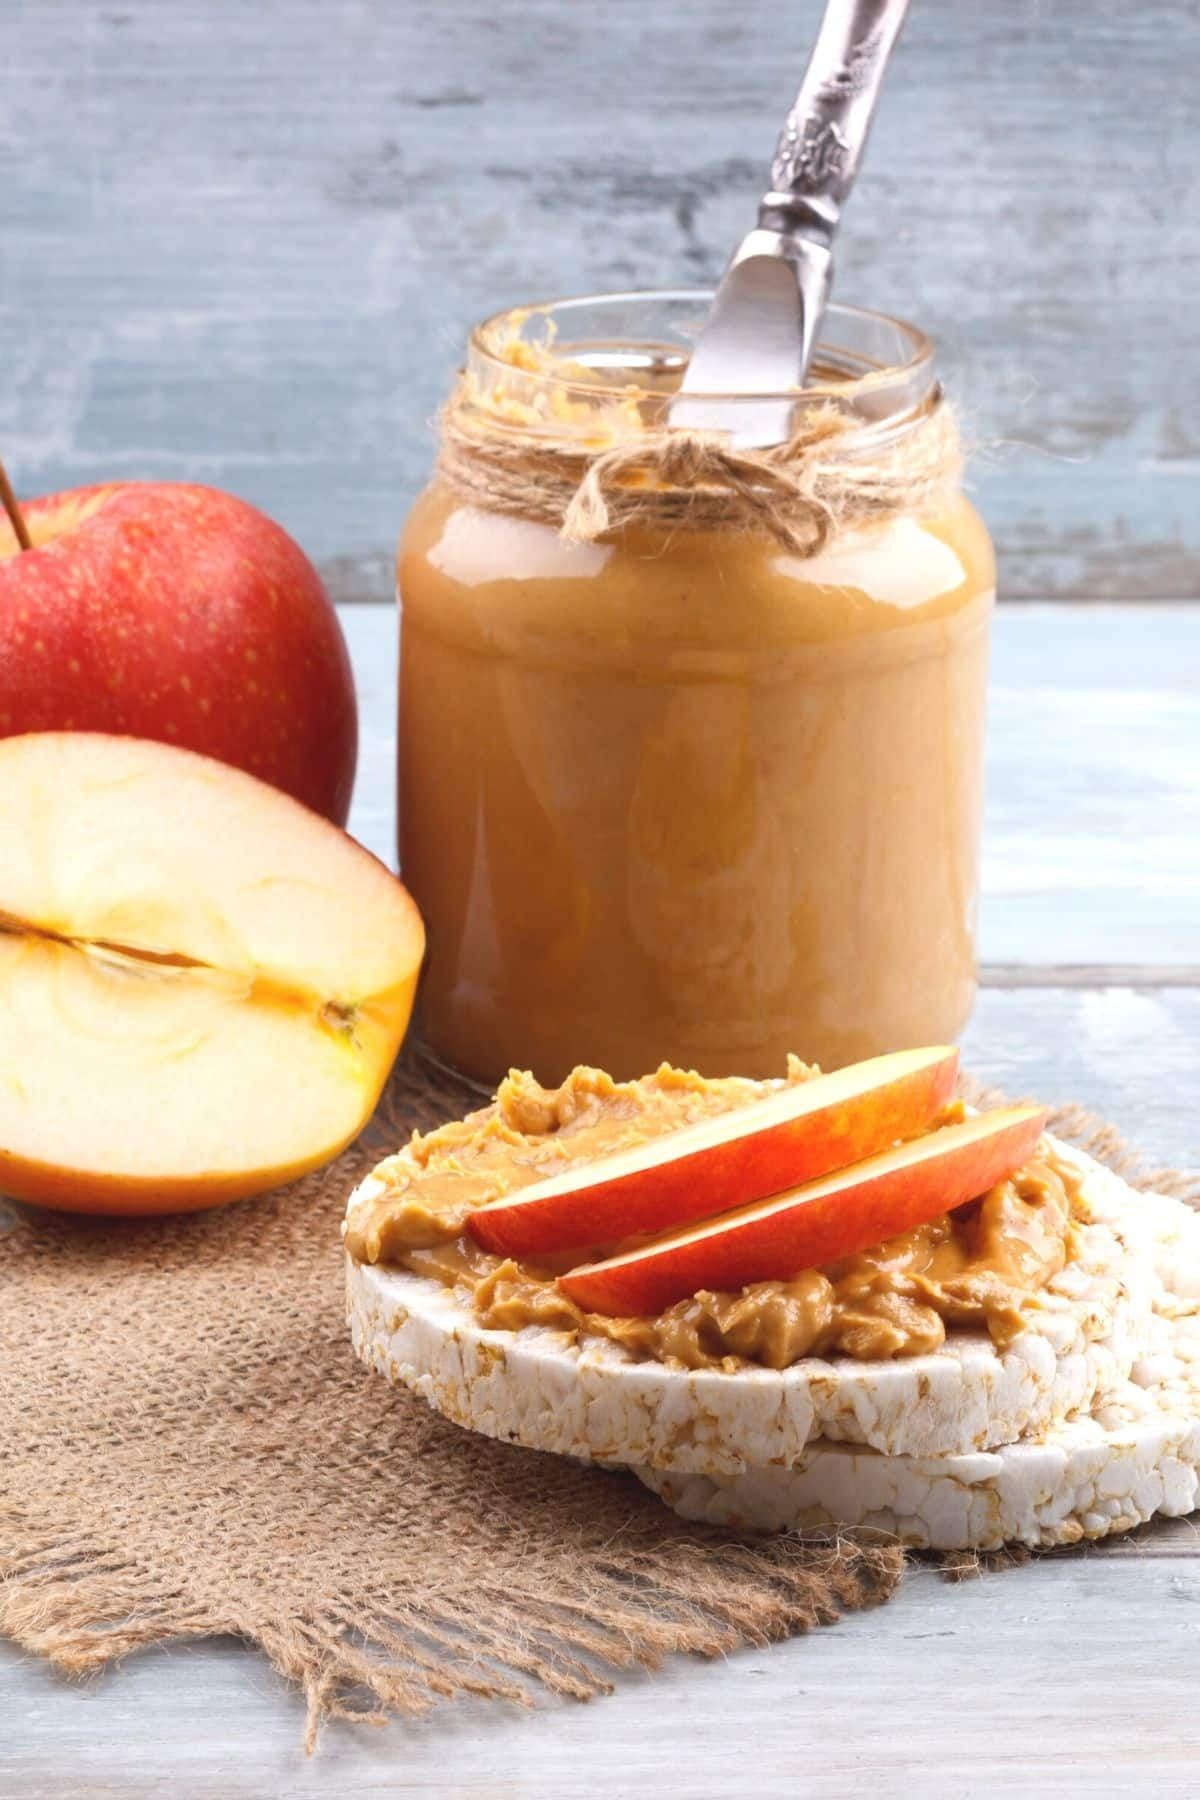 rice cakes with peanut butter and apple